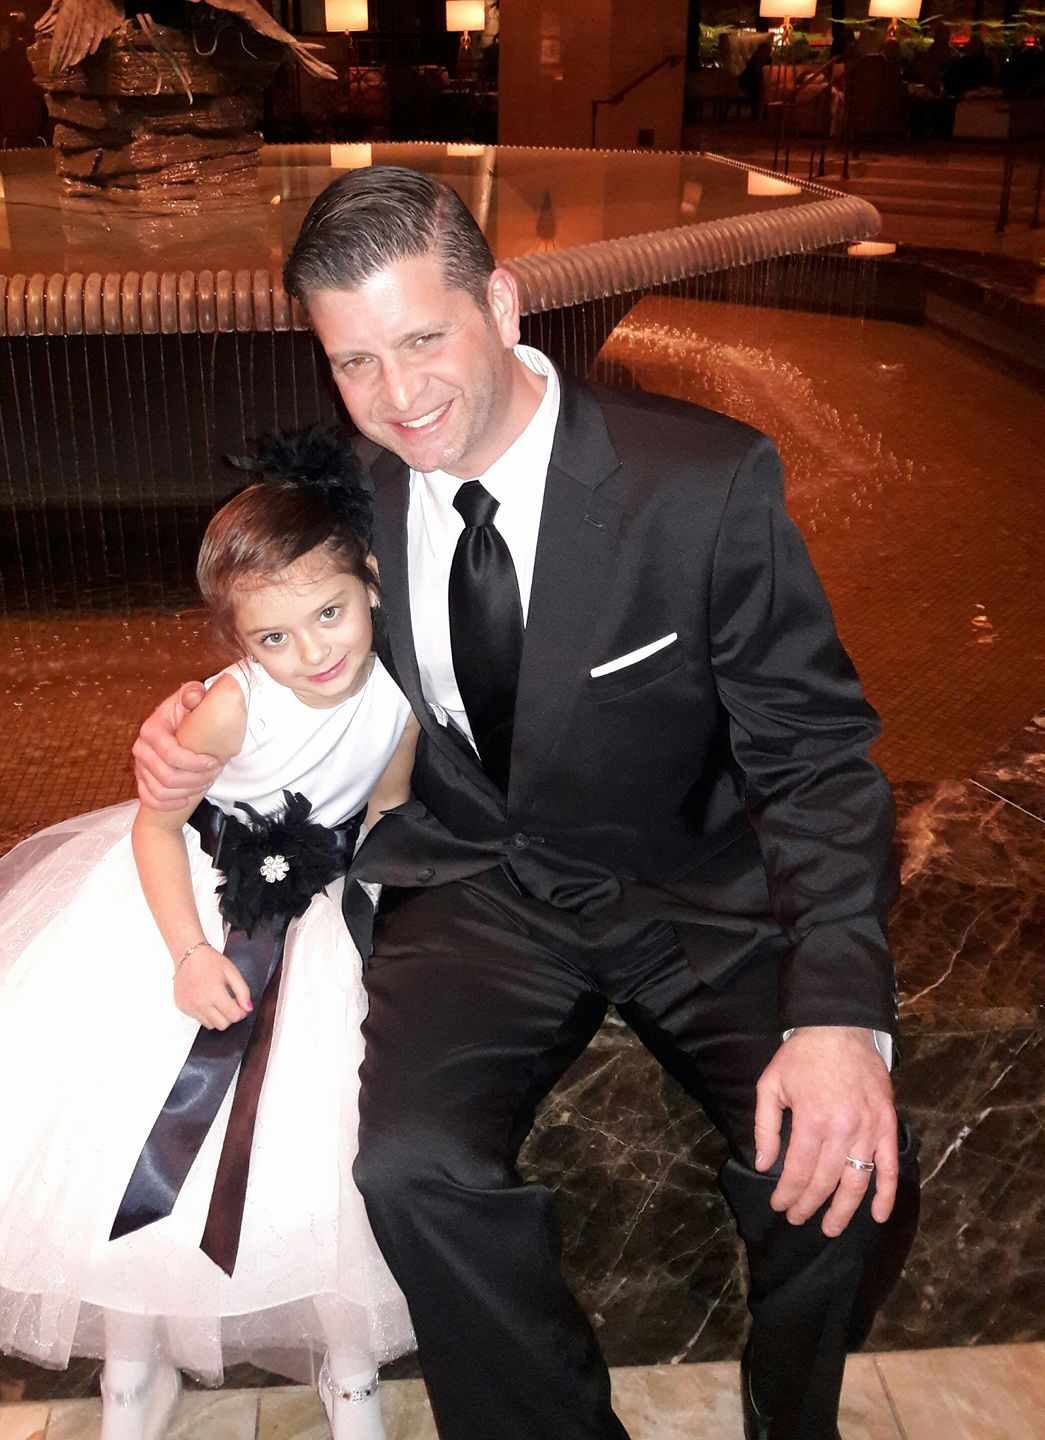 Man in black suit next to little girl